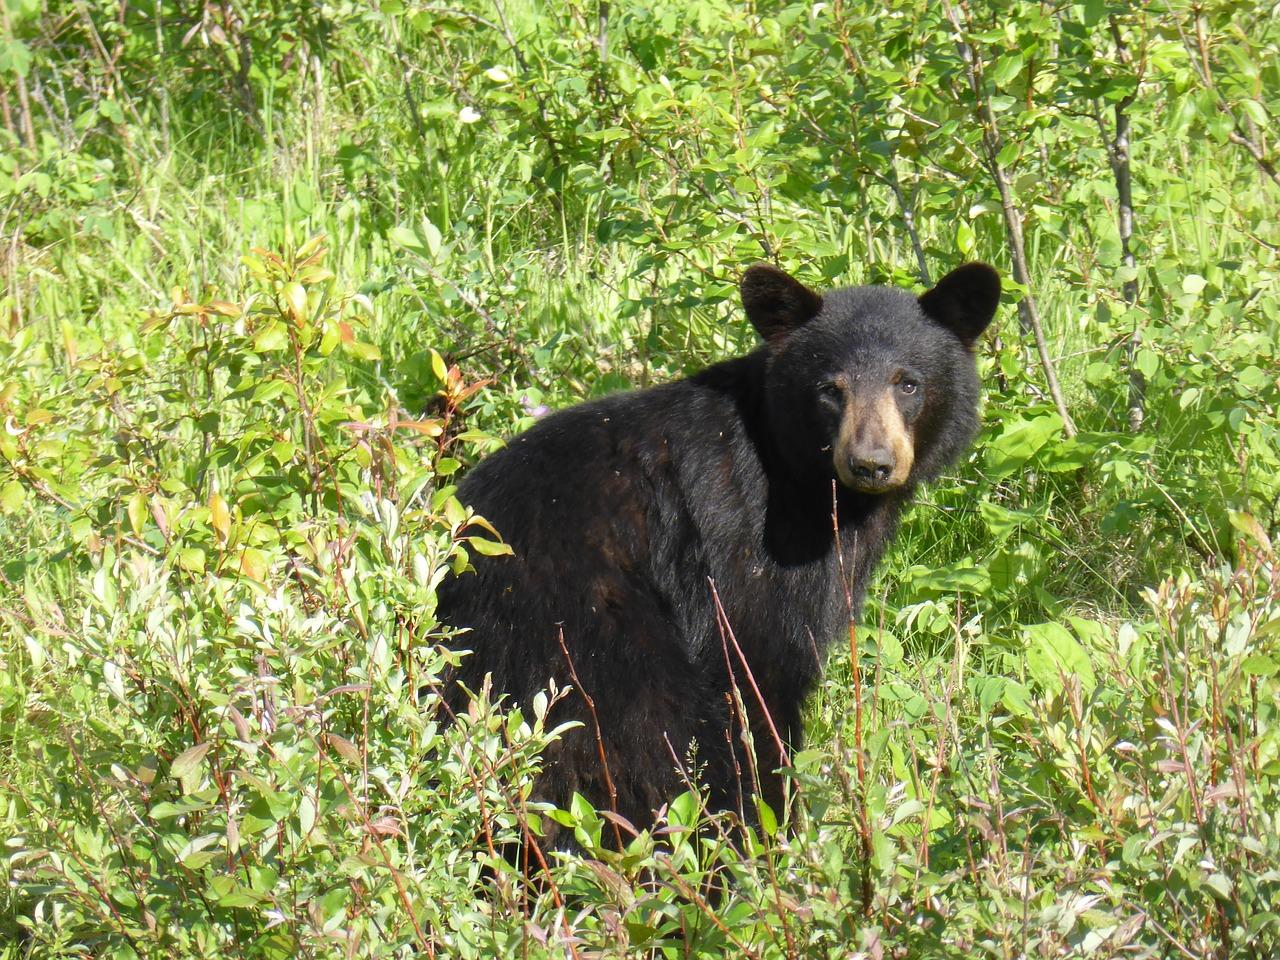 Bear Activity Prompts Garbage Ordinance Crackdown In